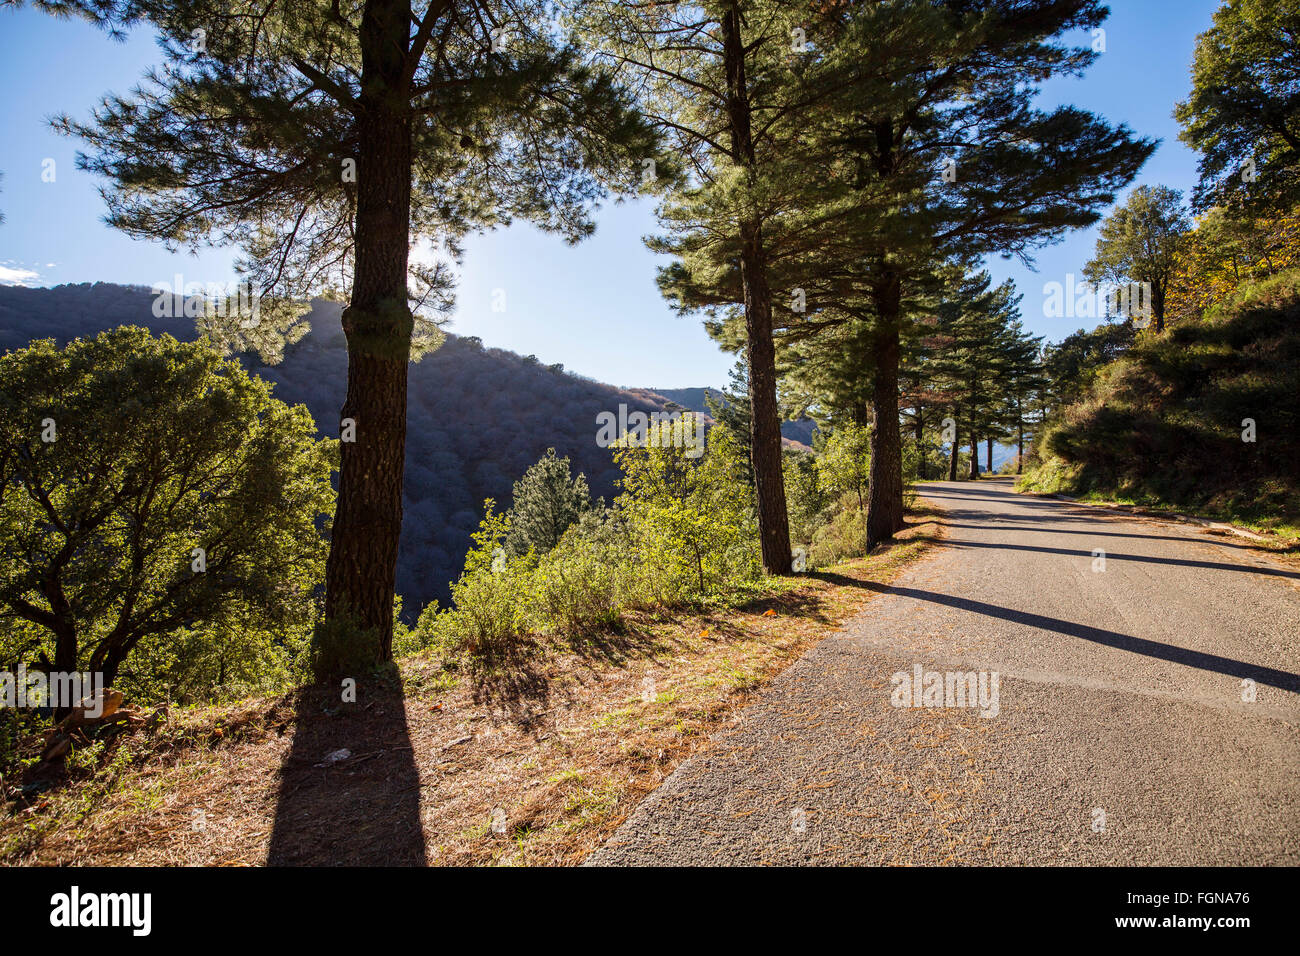 Rural road pine forest Genal valley, Serrania de Ronda. Malaga province, Andalusia Southern Spain - Stock Image